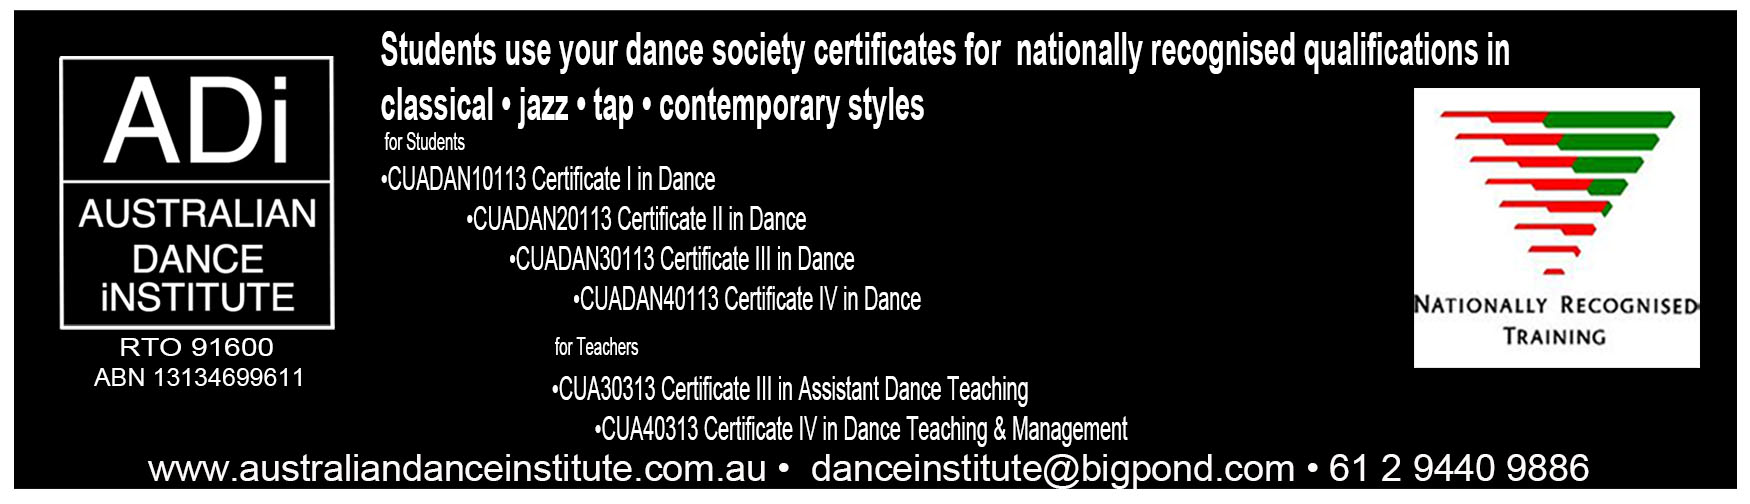 ADi jpeg master all Certs in Dance 2.0[45595]